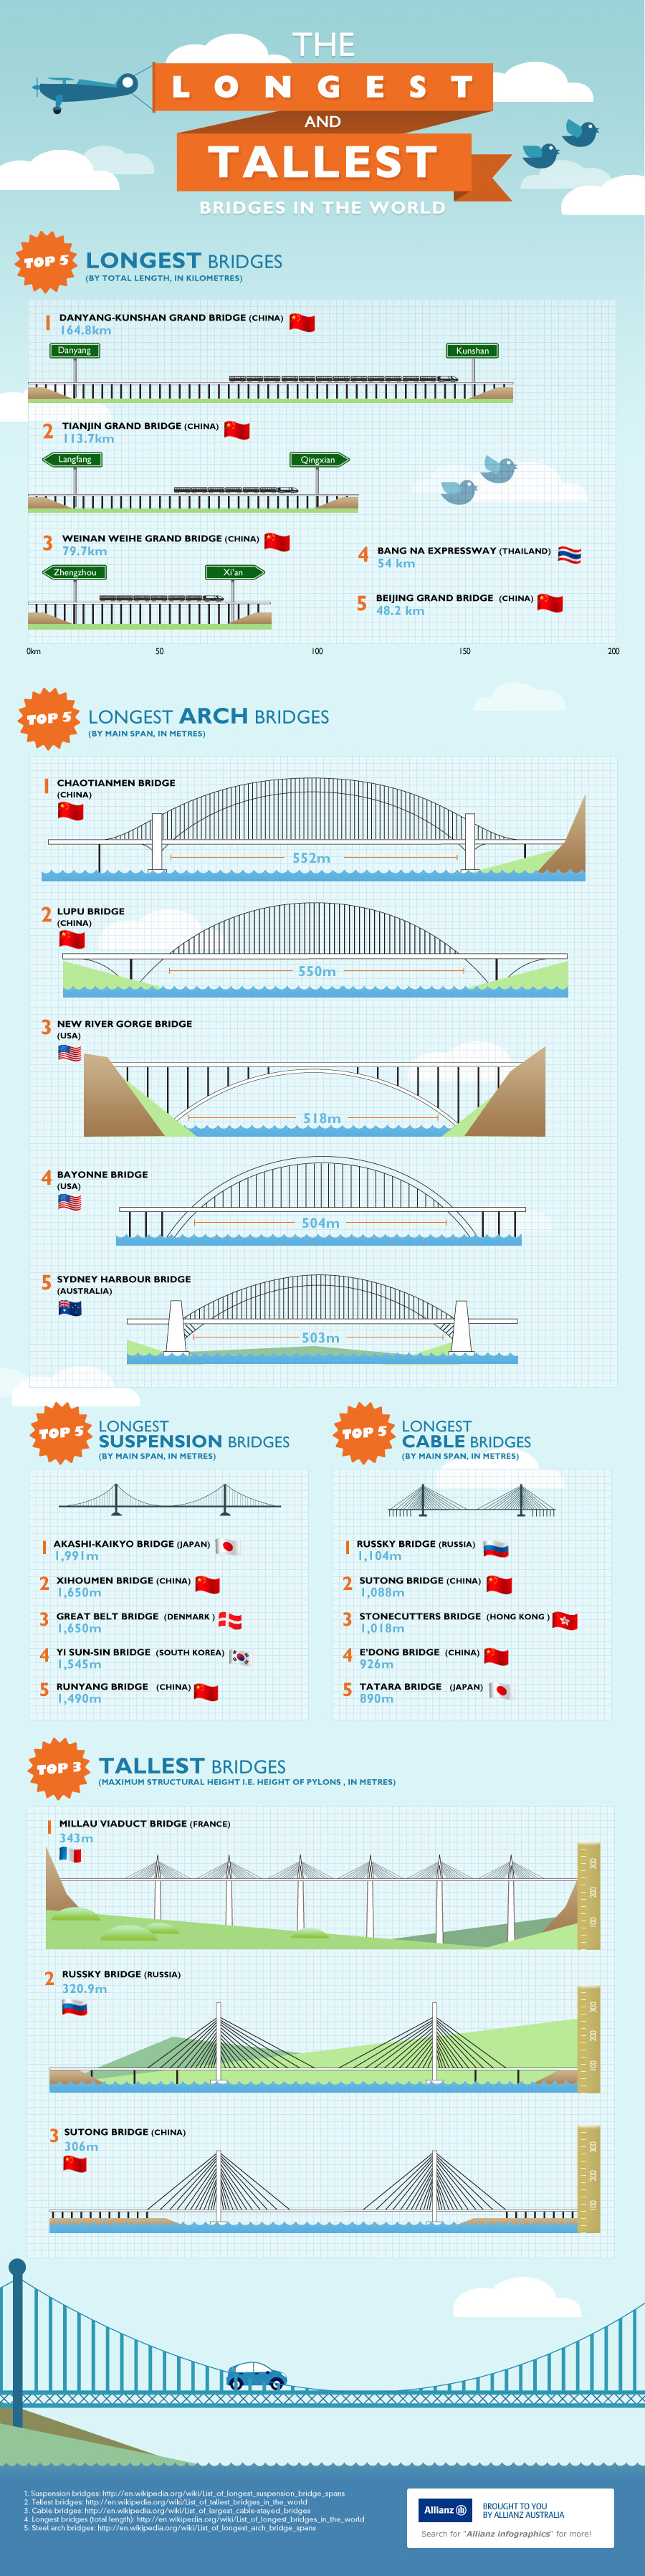 Are these the Longest and tallest Bridges